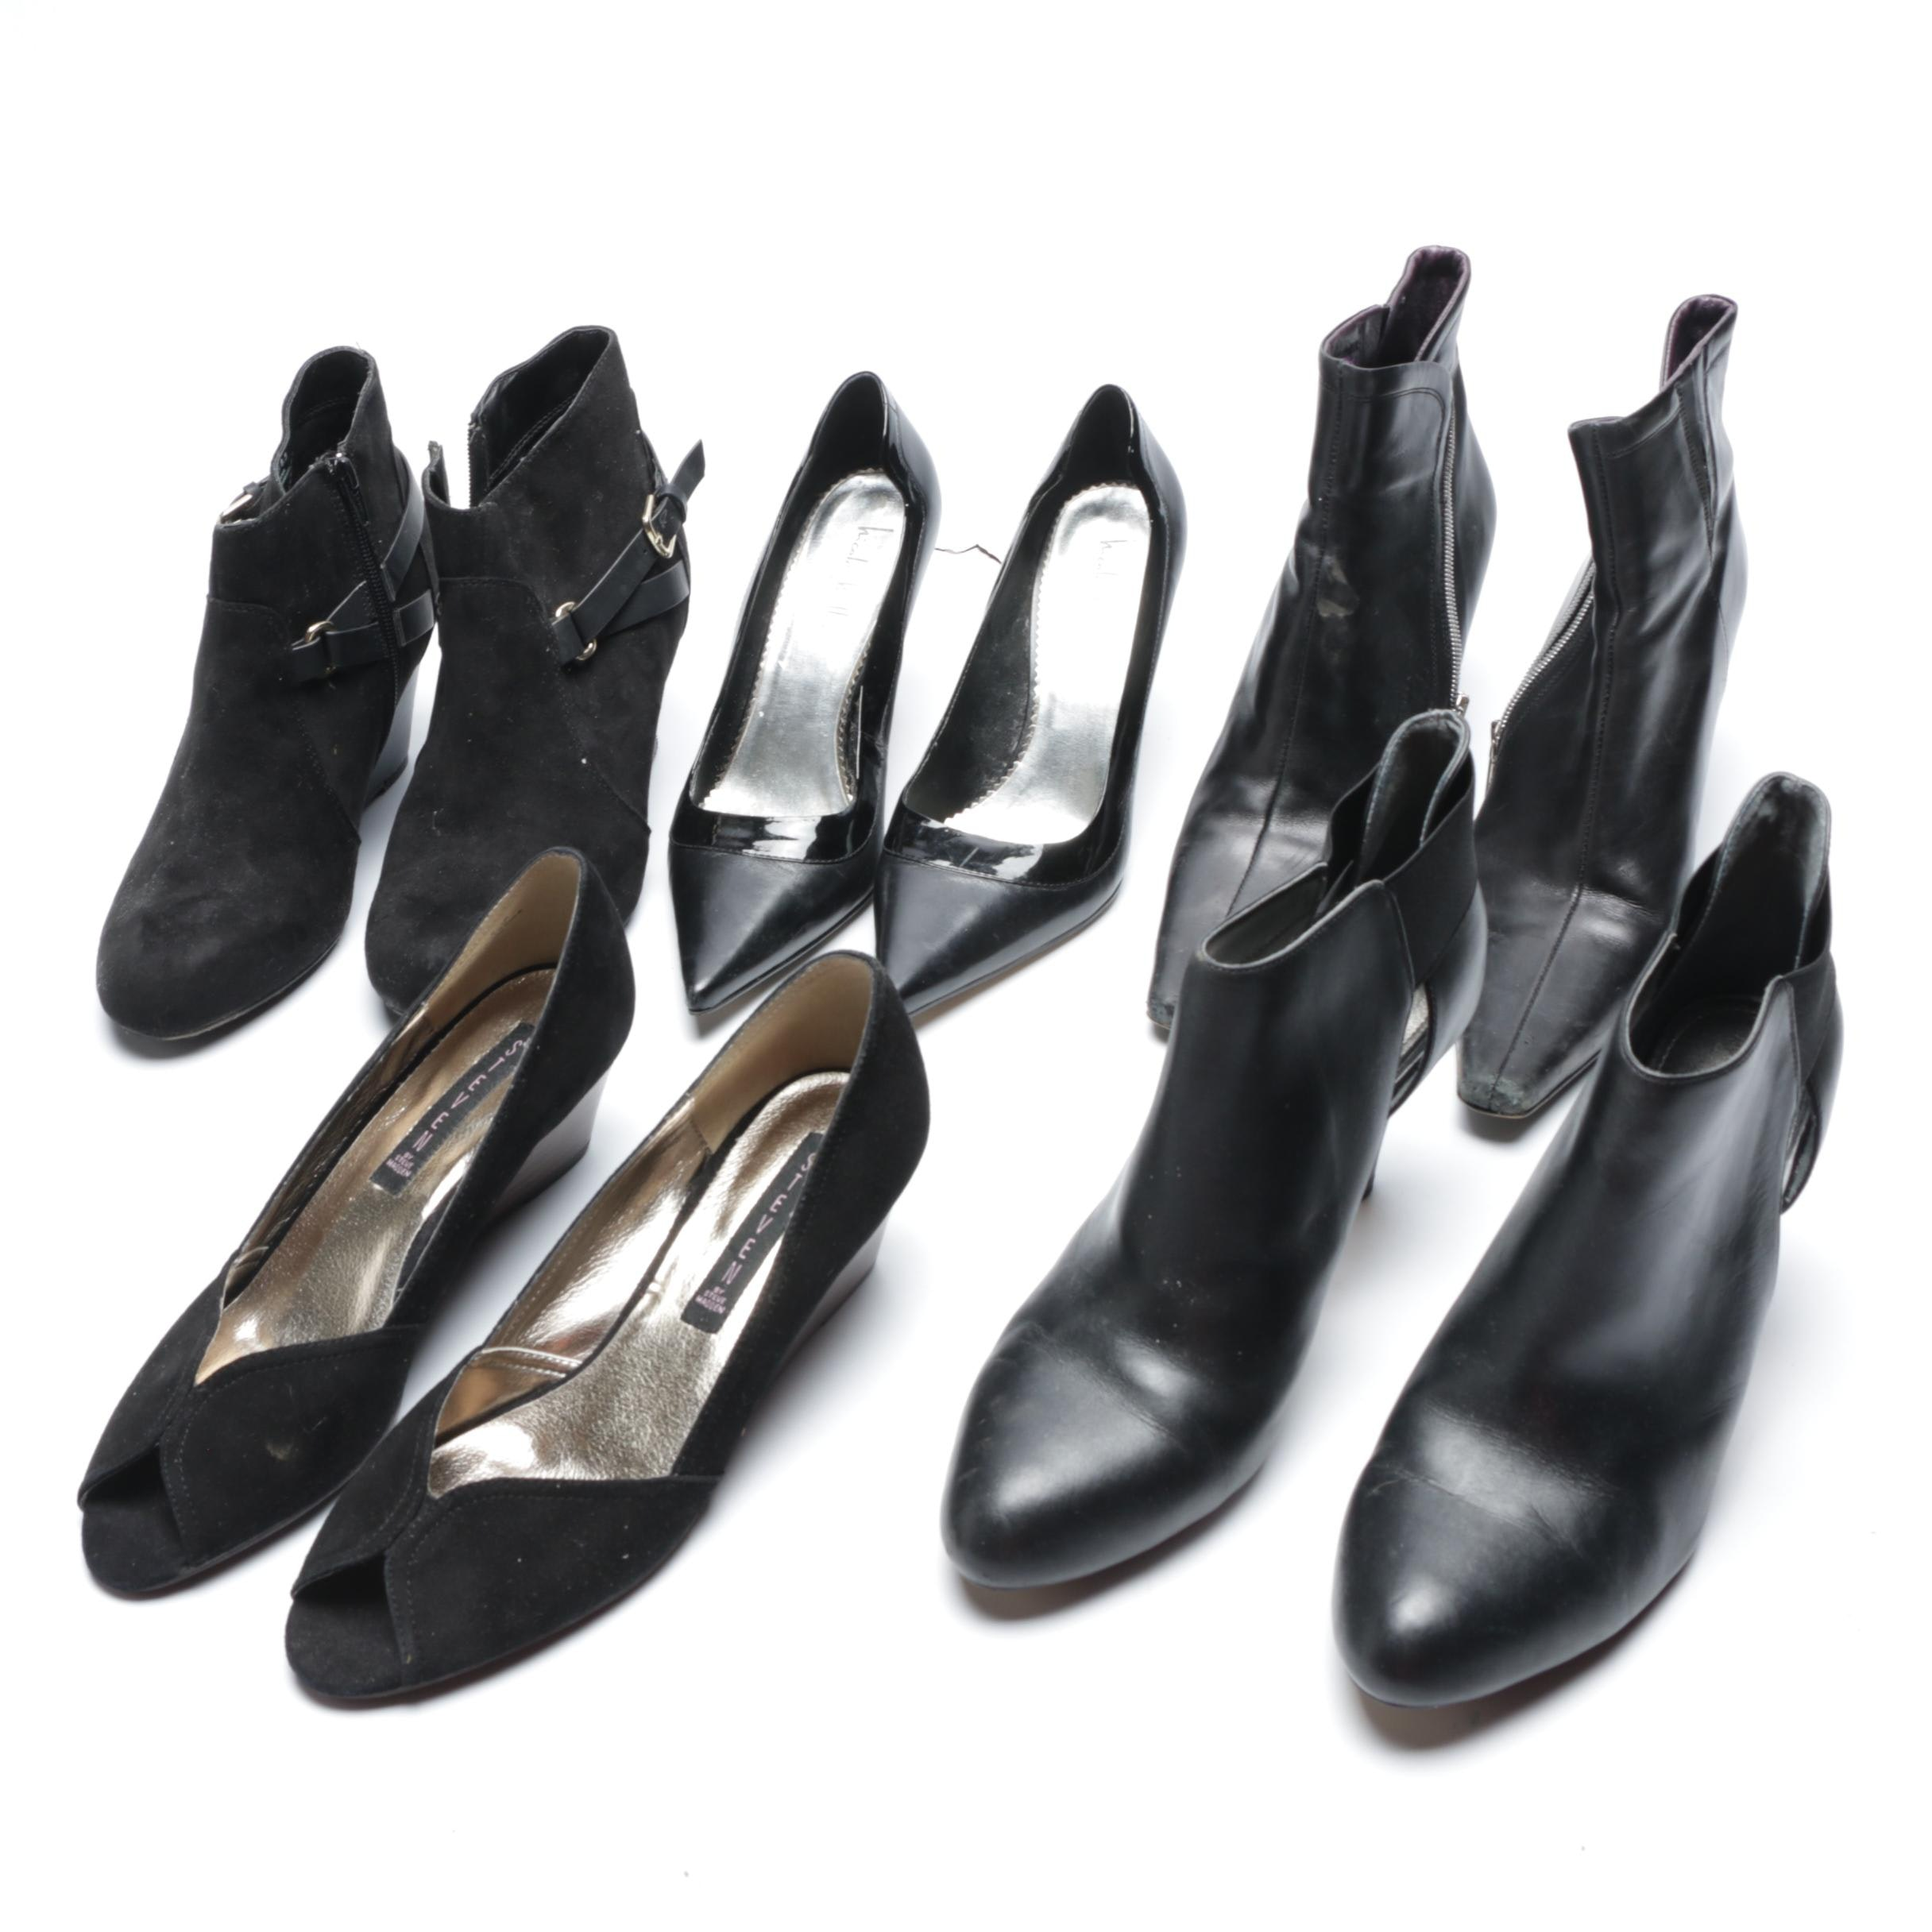 Black Leather and Suede Booties and Heels from Donald J. Pliner, Steven and More